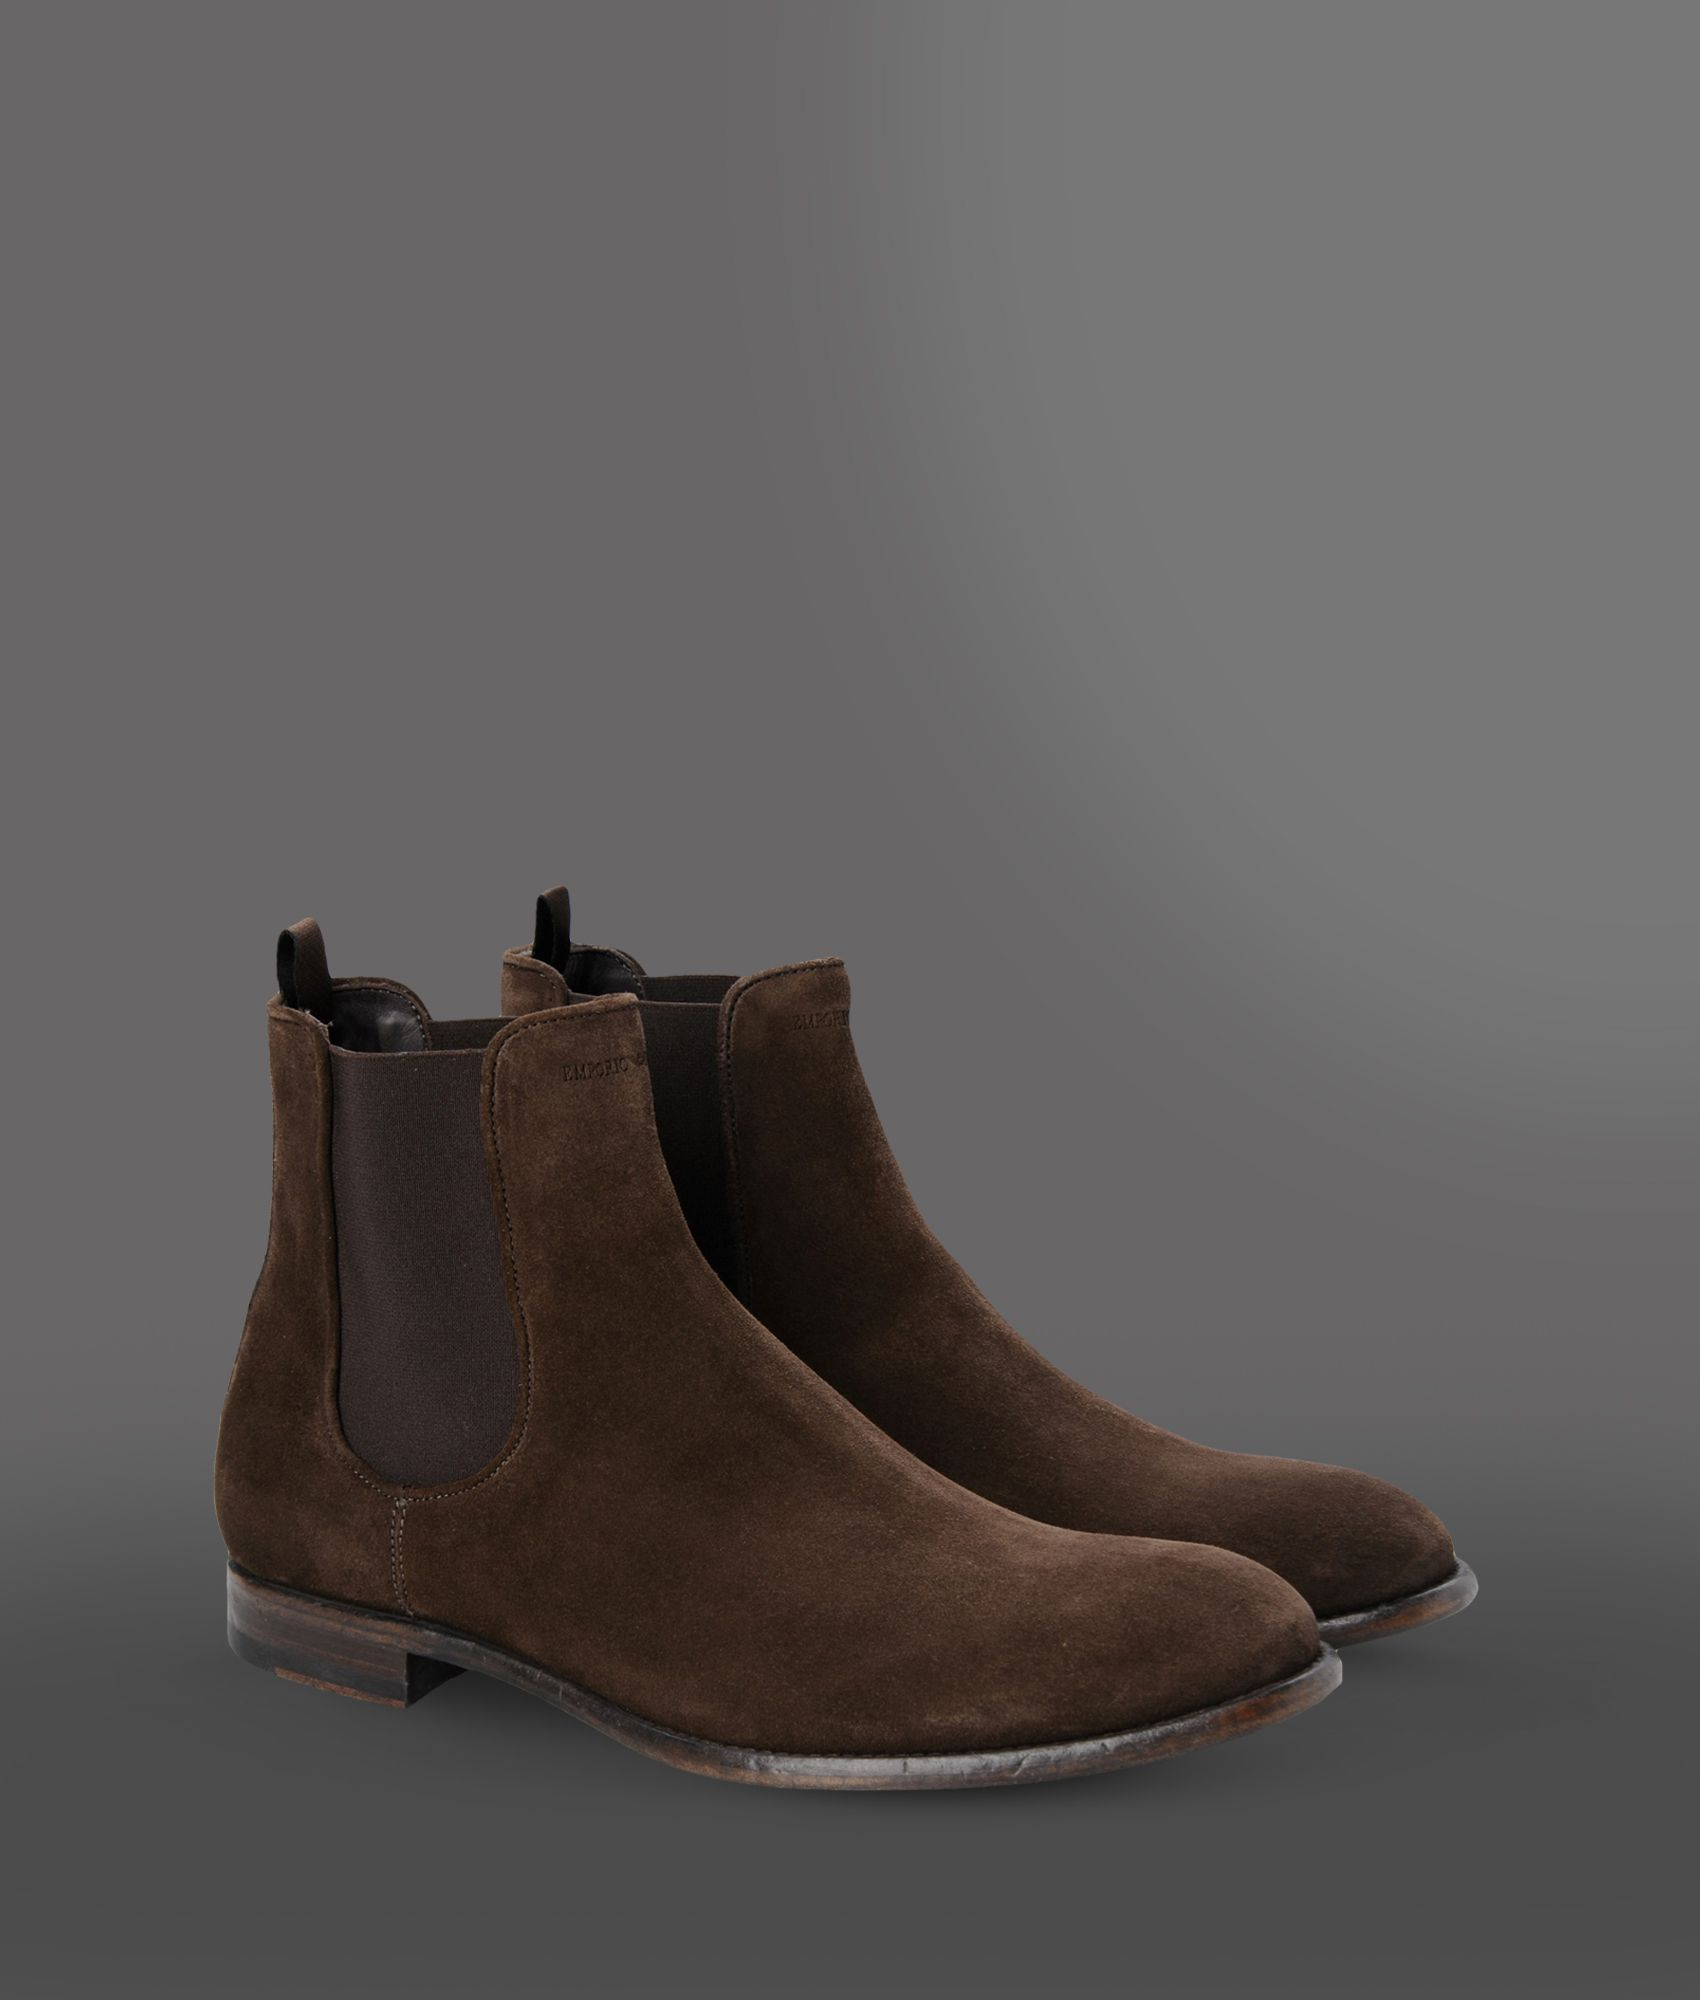 Emporio Armani Ankle Boots In Brown For Men Lyst